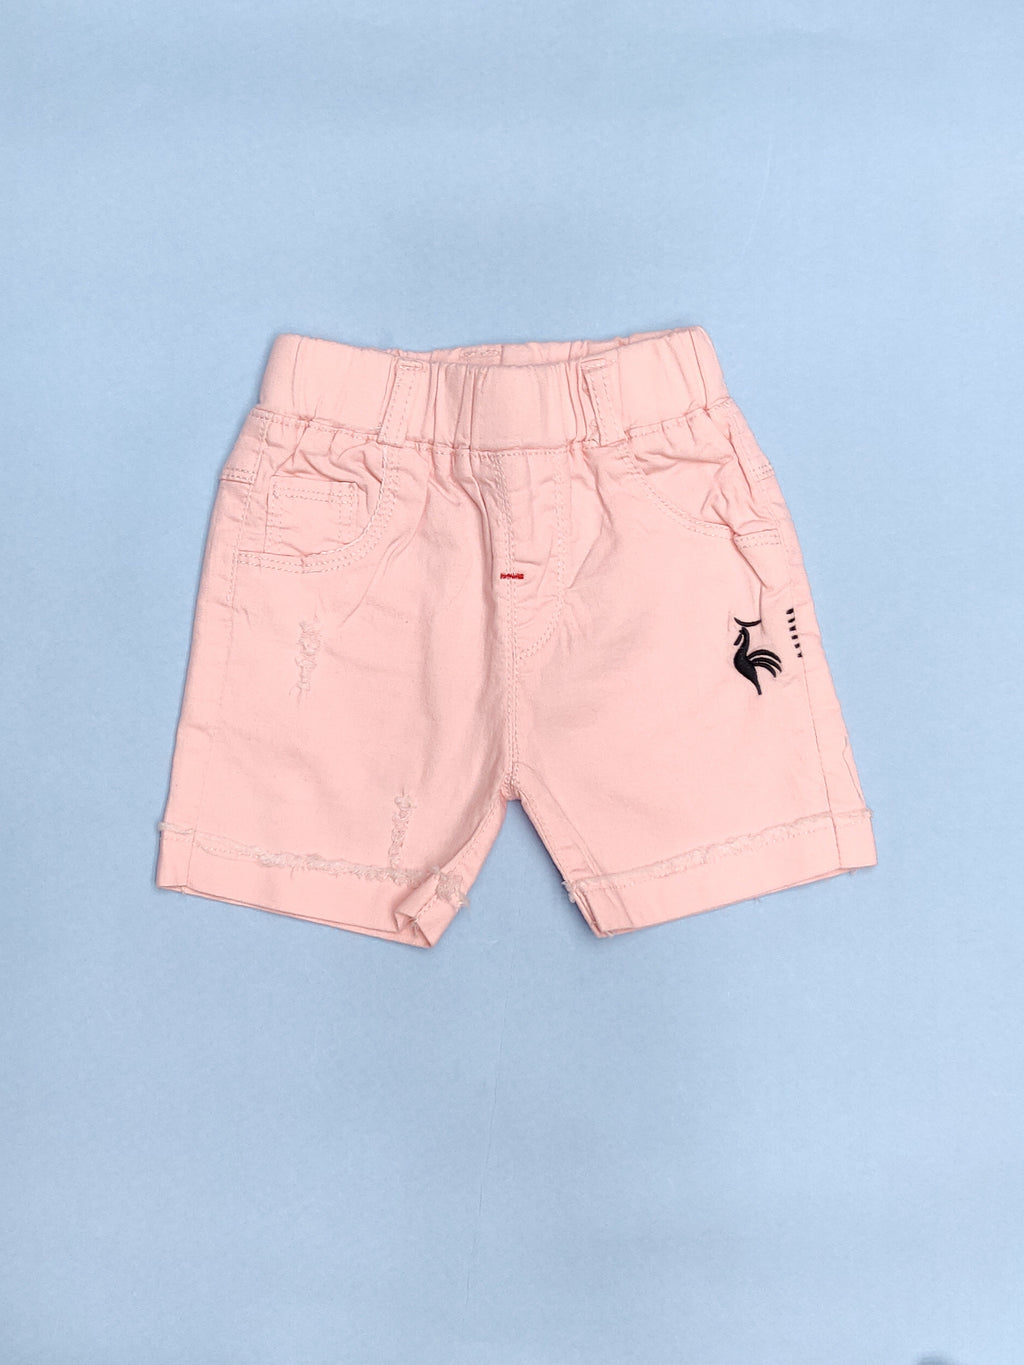 Cotton Girls Shorts